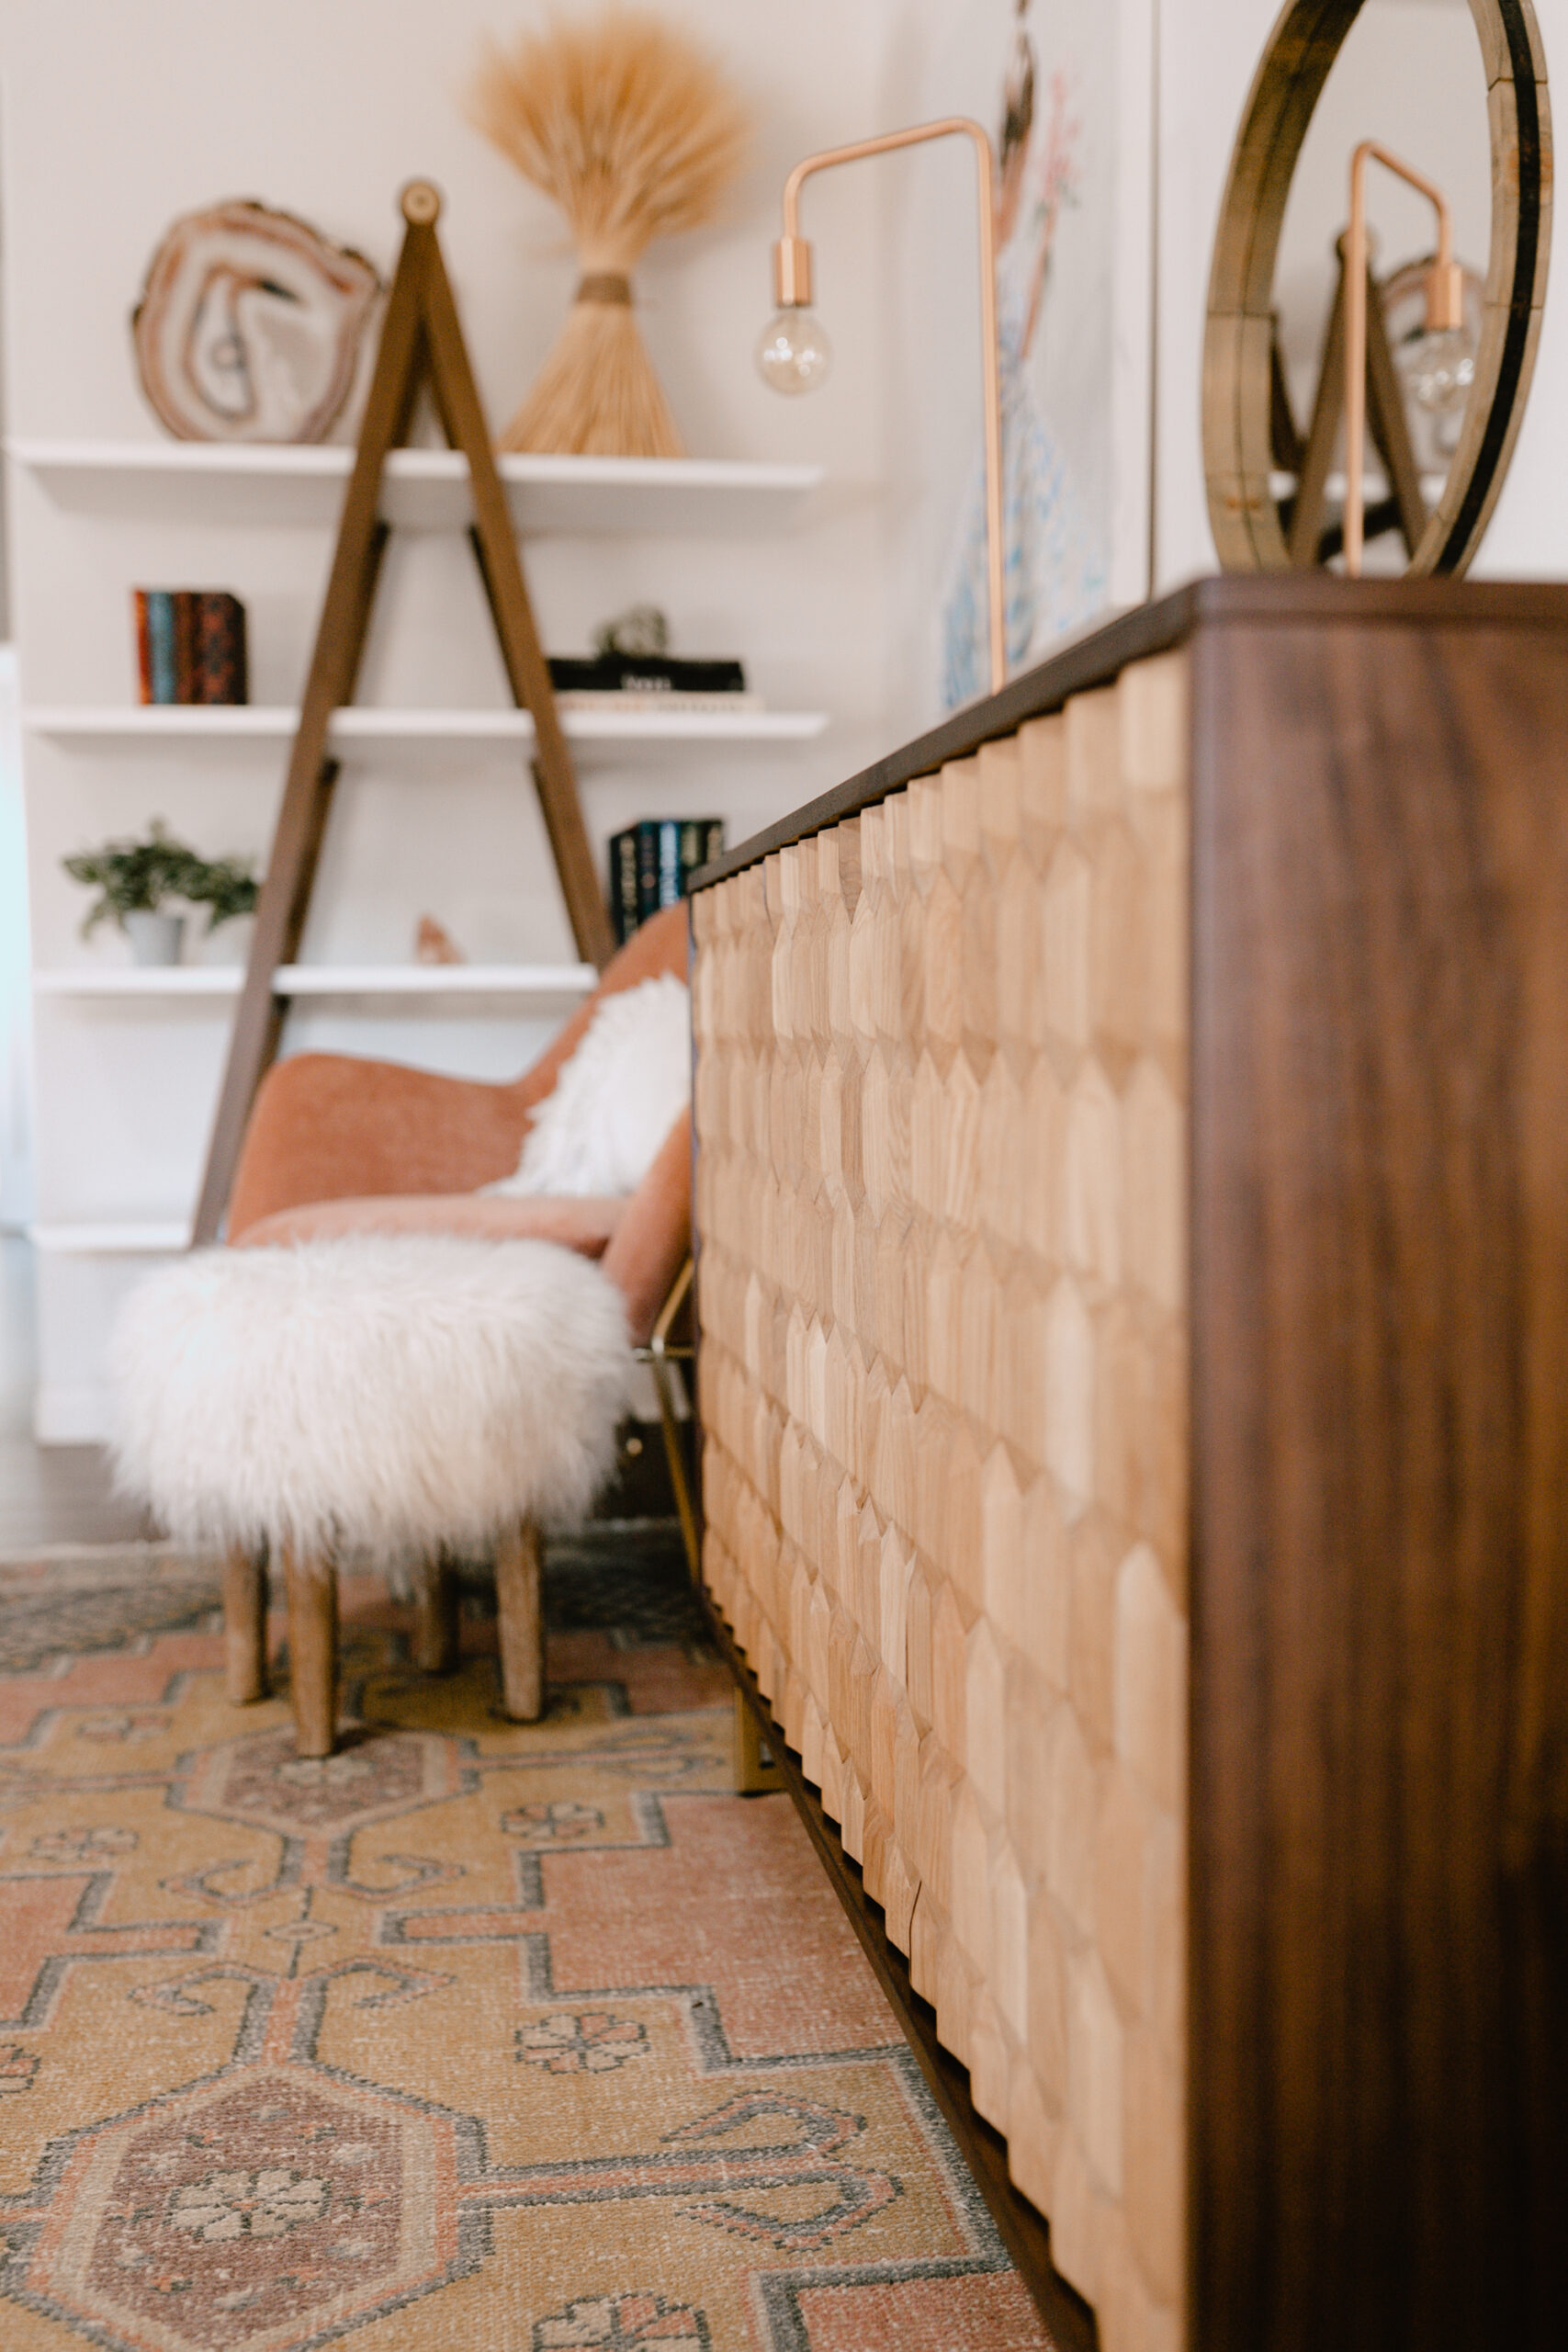 close up view of our new geome sideboard from article. #theldlhome #sideboard #homedesign #midcenturymodern